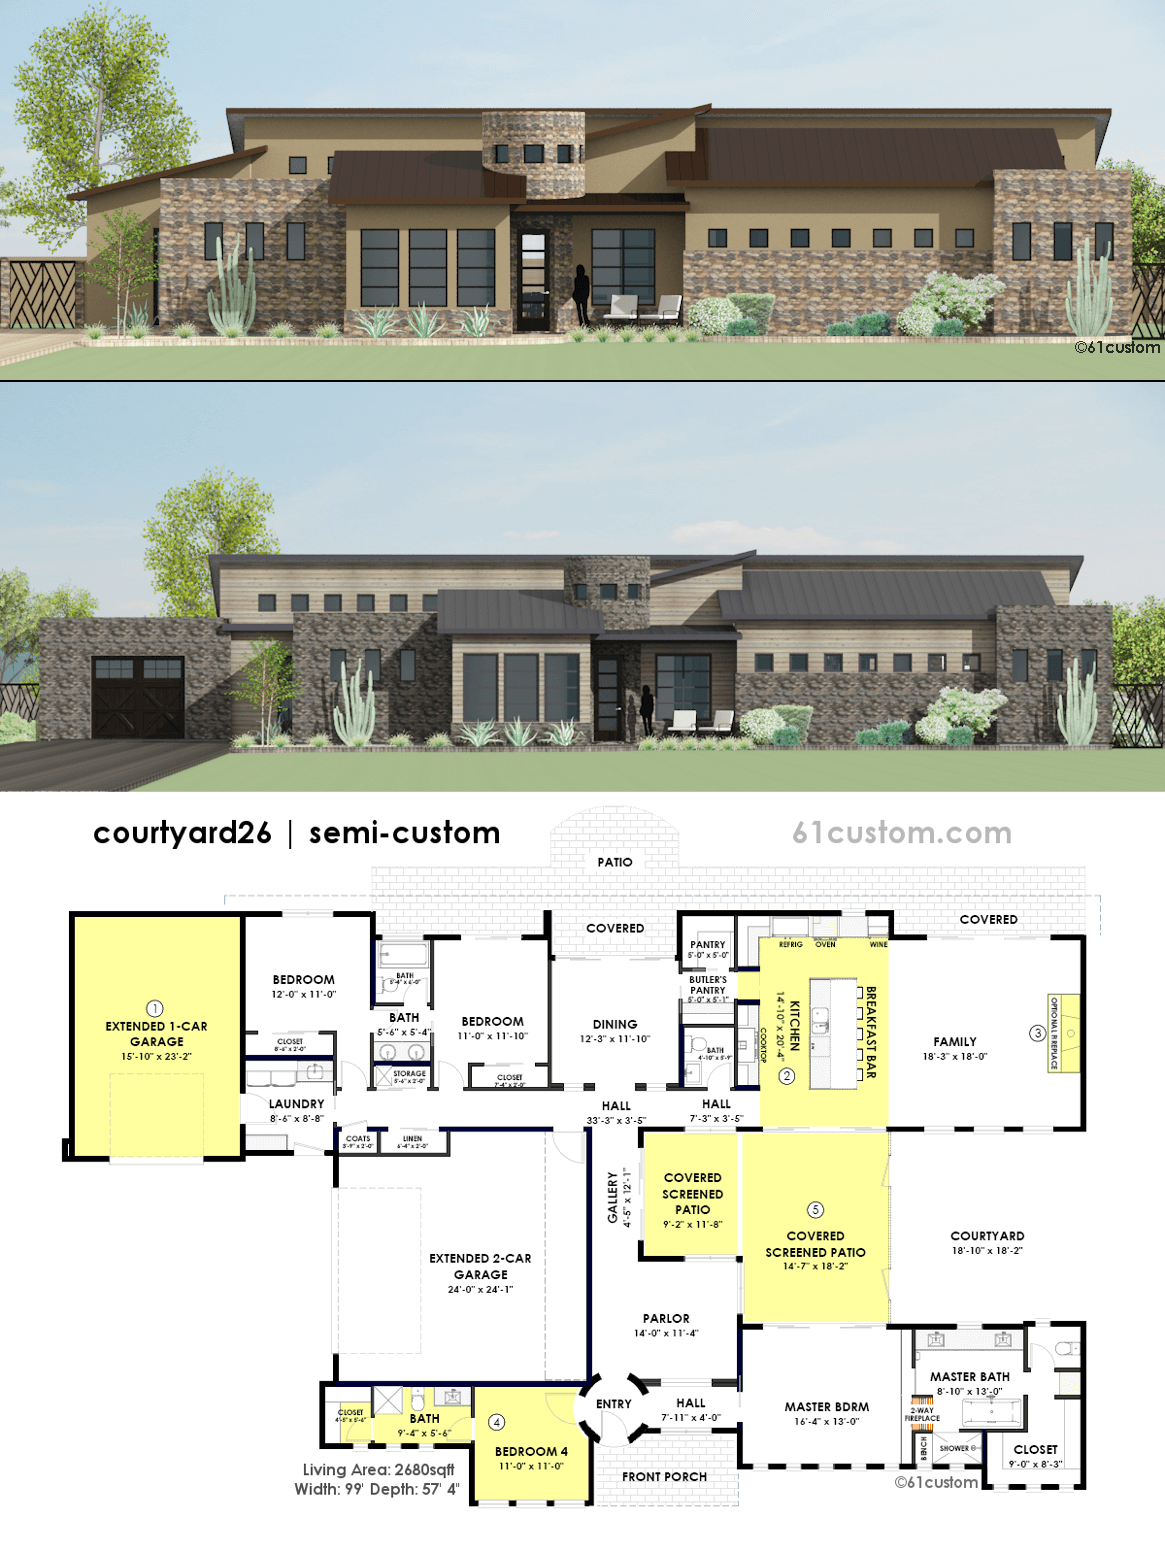 Contemporary side courtyard house plan 61custom for Modern home blueprints